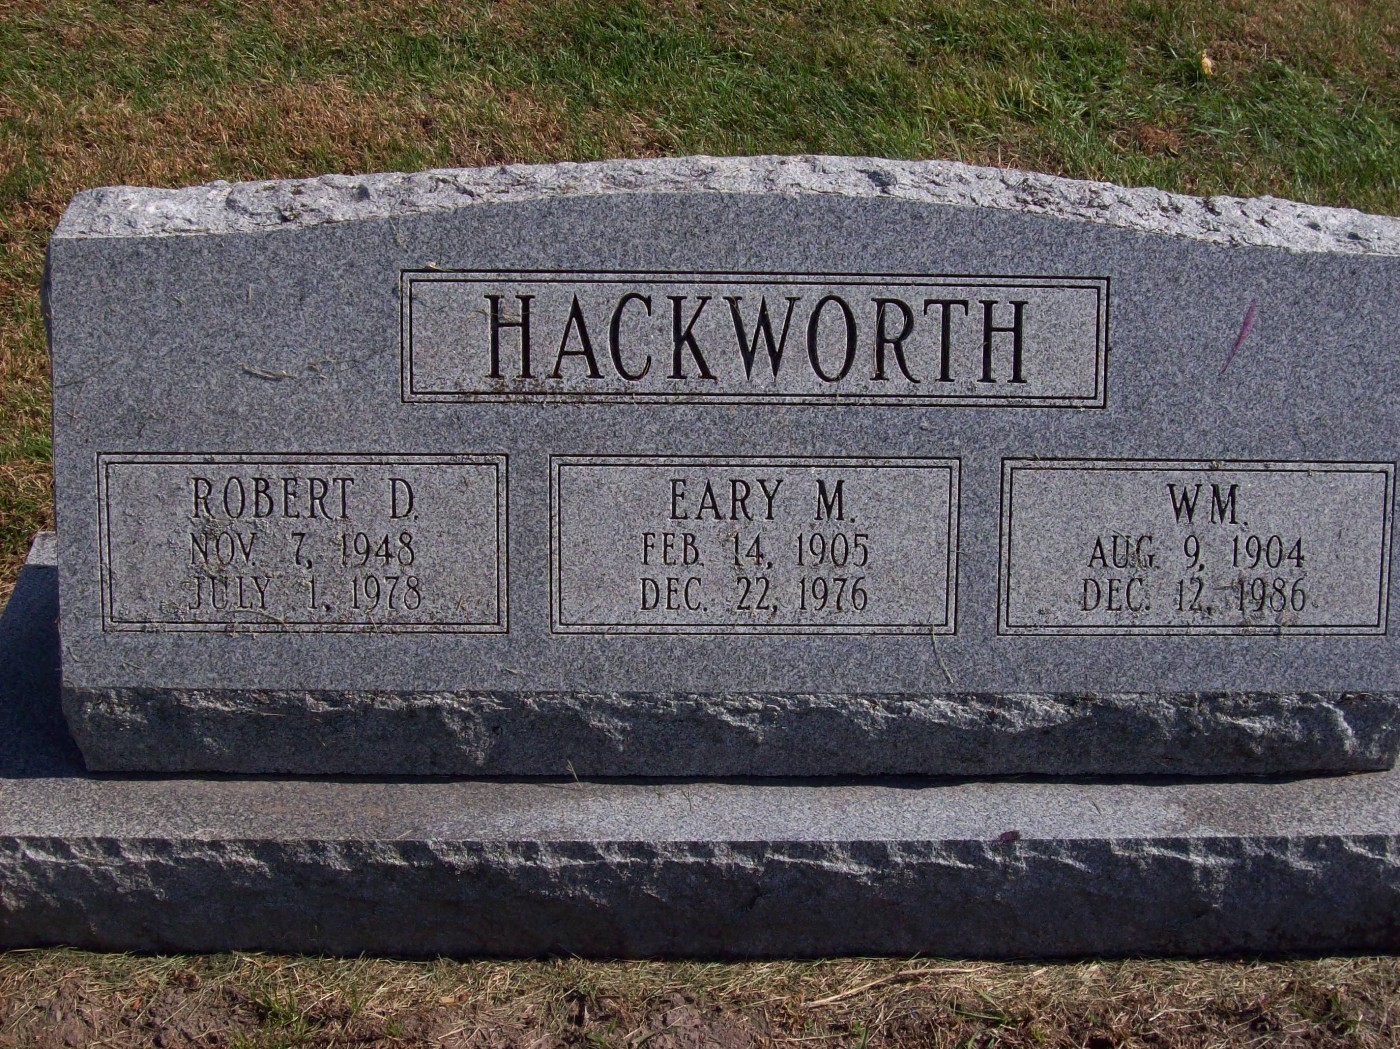 William Hackworth